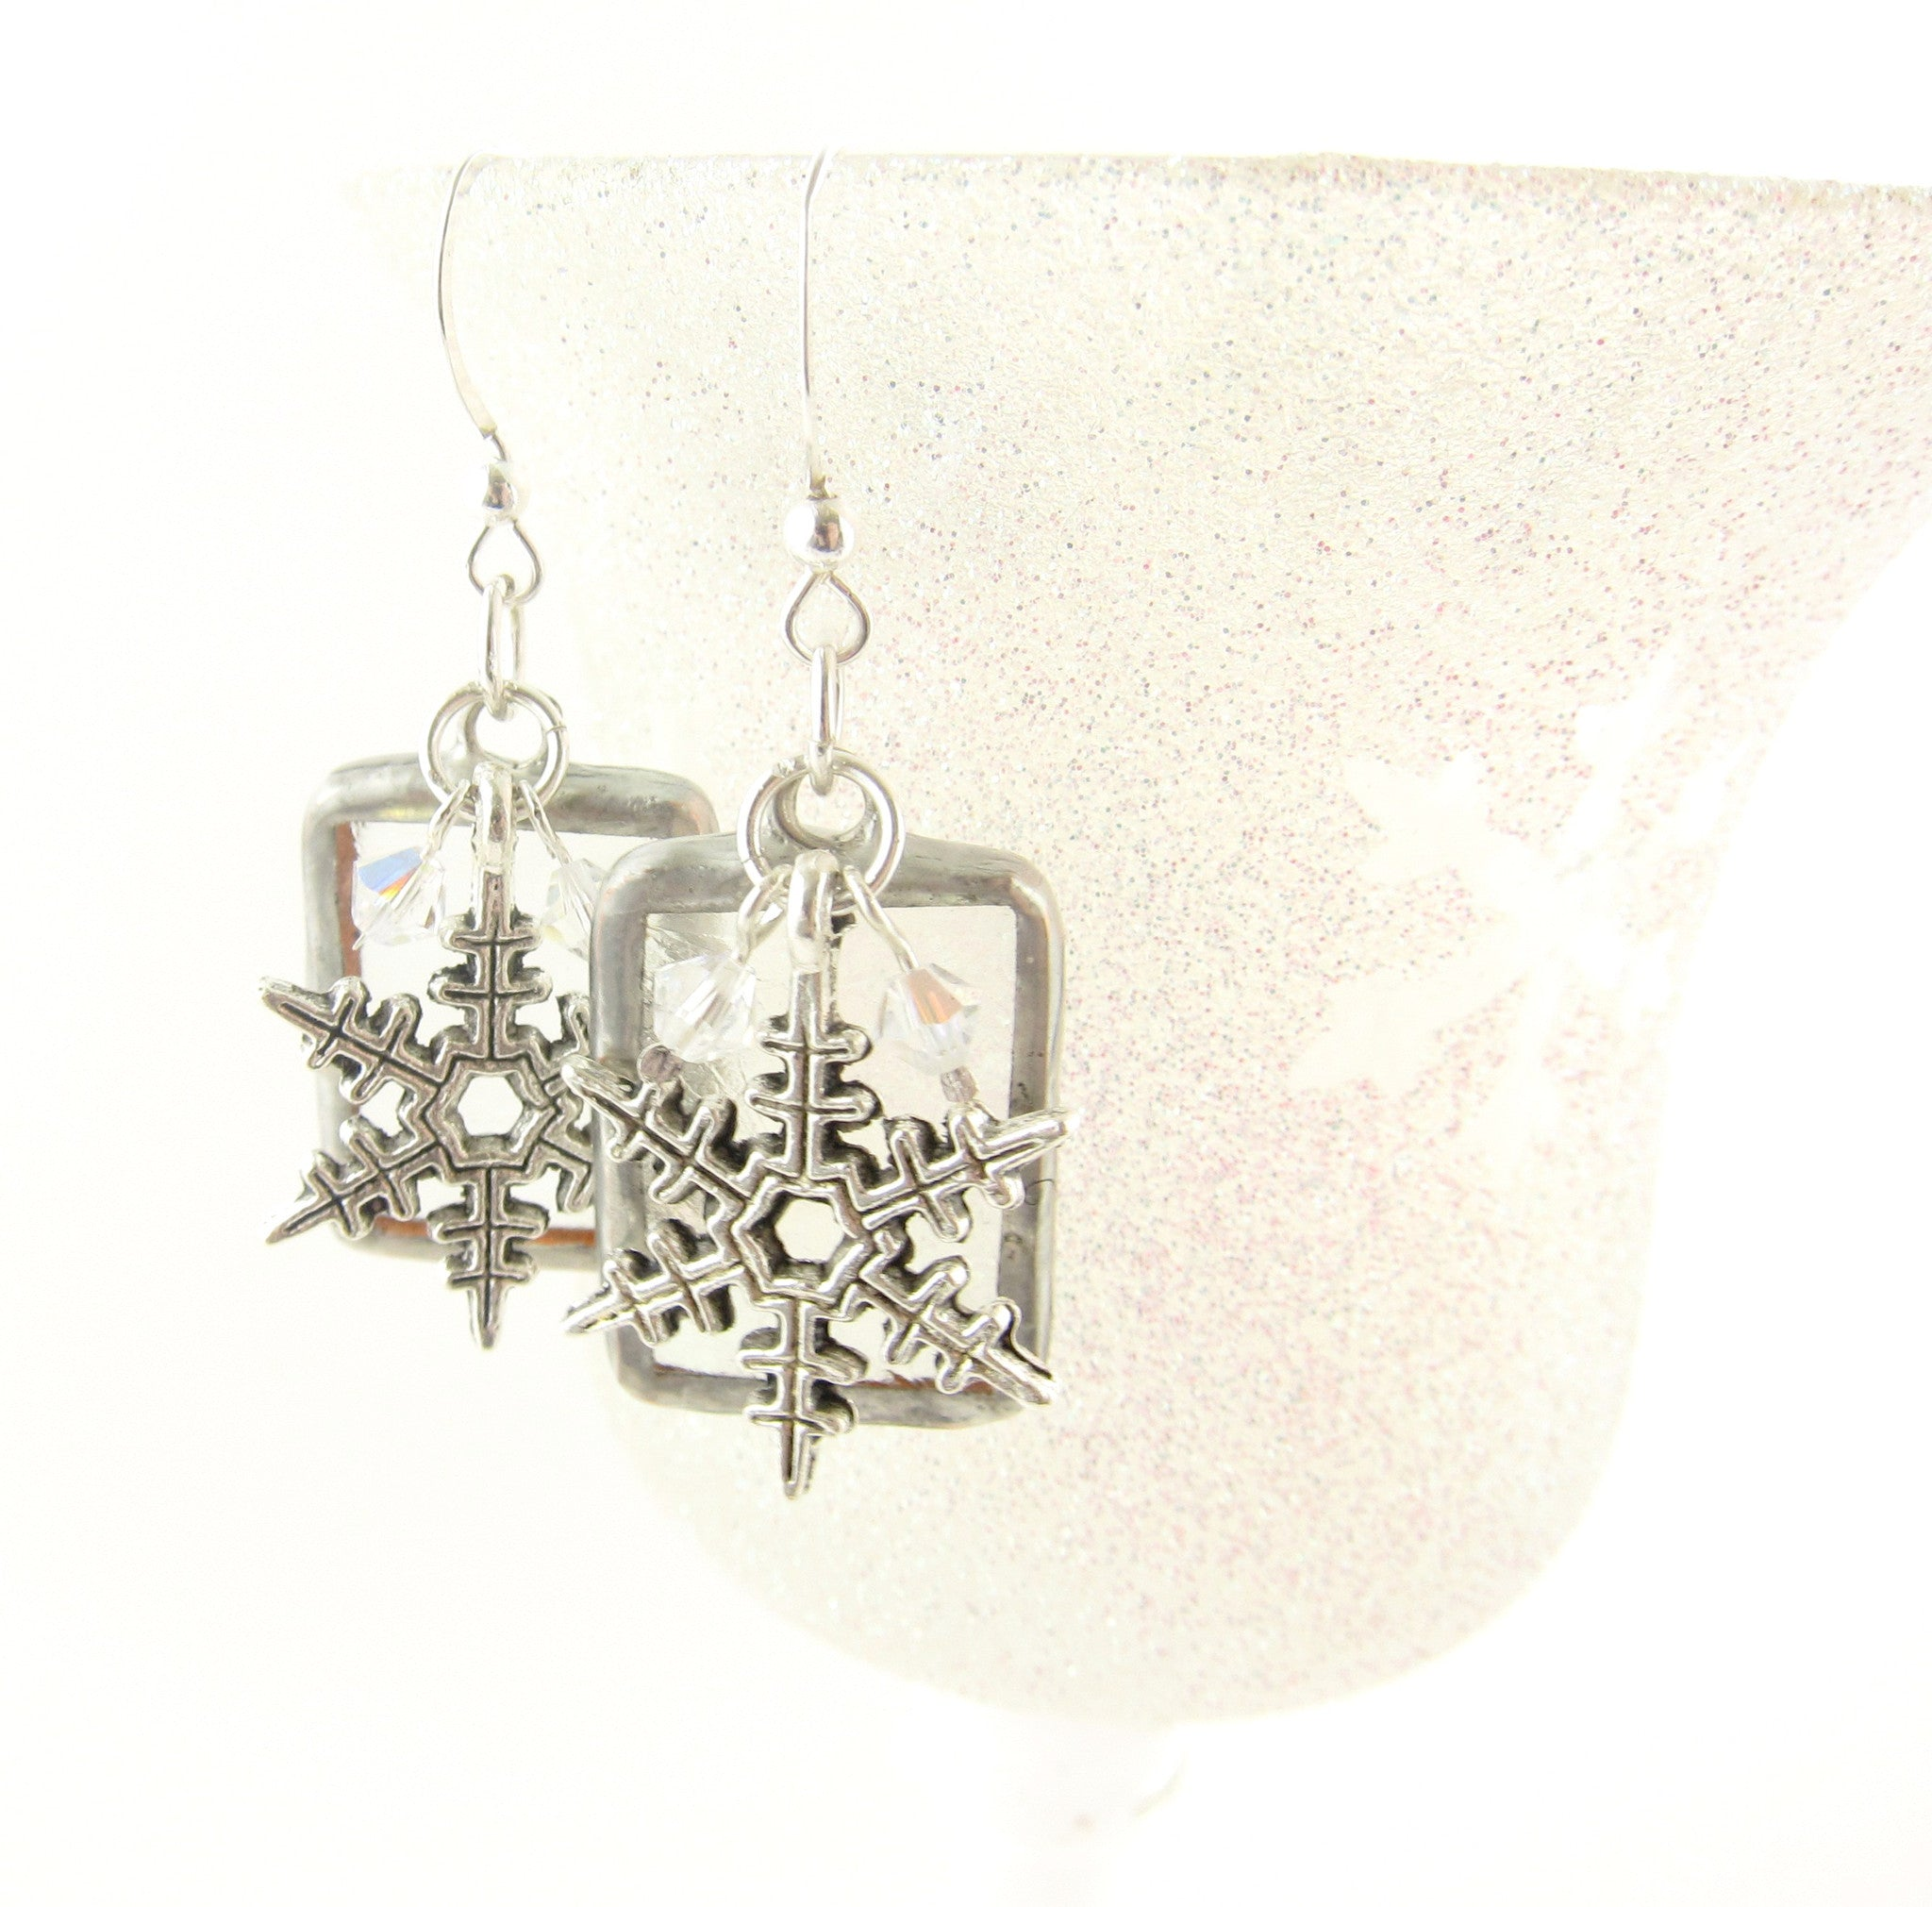 Snowflake stained glass earrings